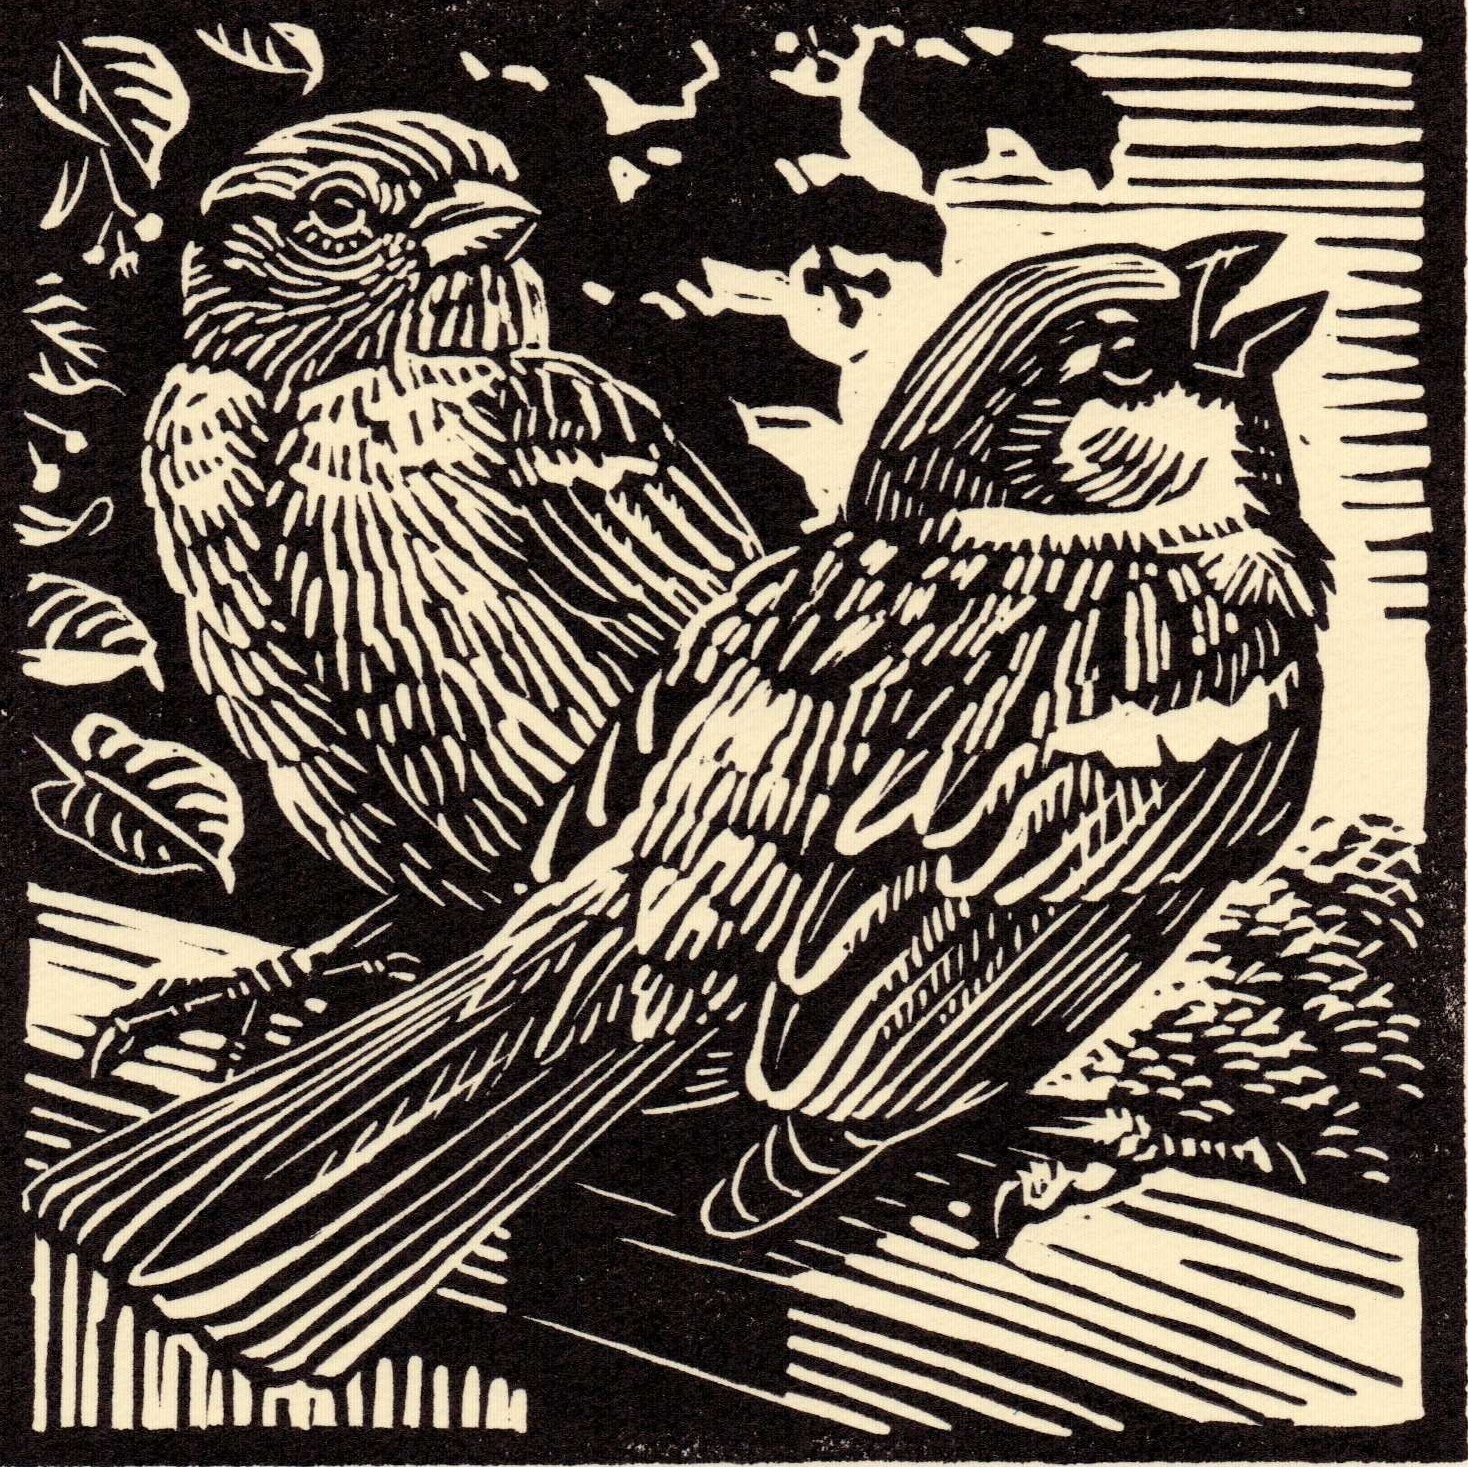 "<span class=""link fancybox-details-link""><a href=""/exhibitions/17/works/image_standalone618/"">View Detail Page</a></span><p><strong>Richard Allen</strong></p><p>House Sparrows</p><p>linocut, ed of 50</p><p>31 x 31cm</p><p>£145 framed</p><p>£95 unframed</p>"